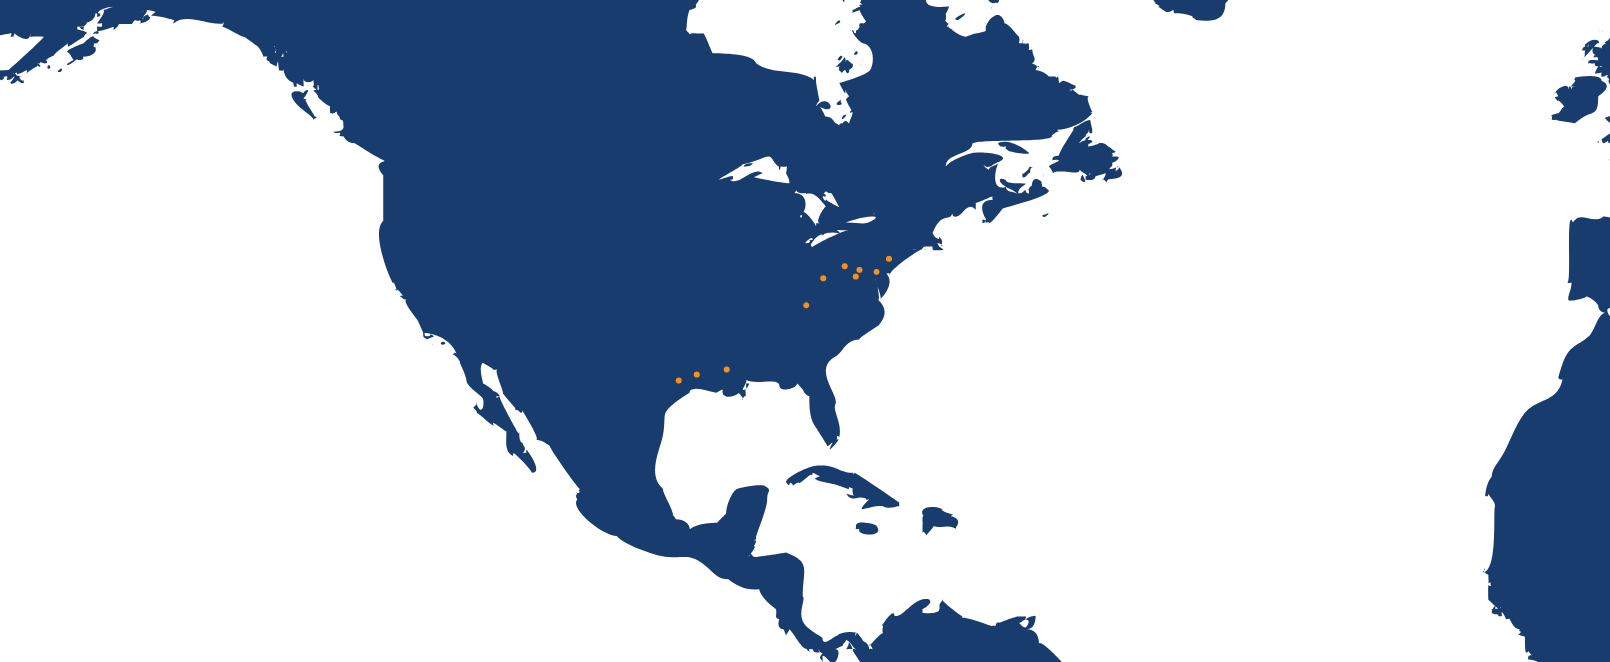 cdi engineering solutions locations map